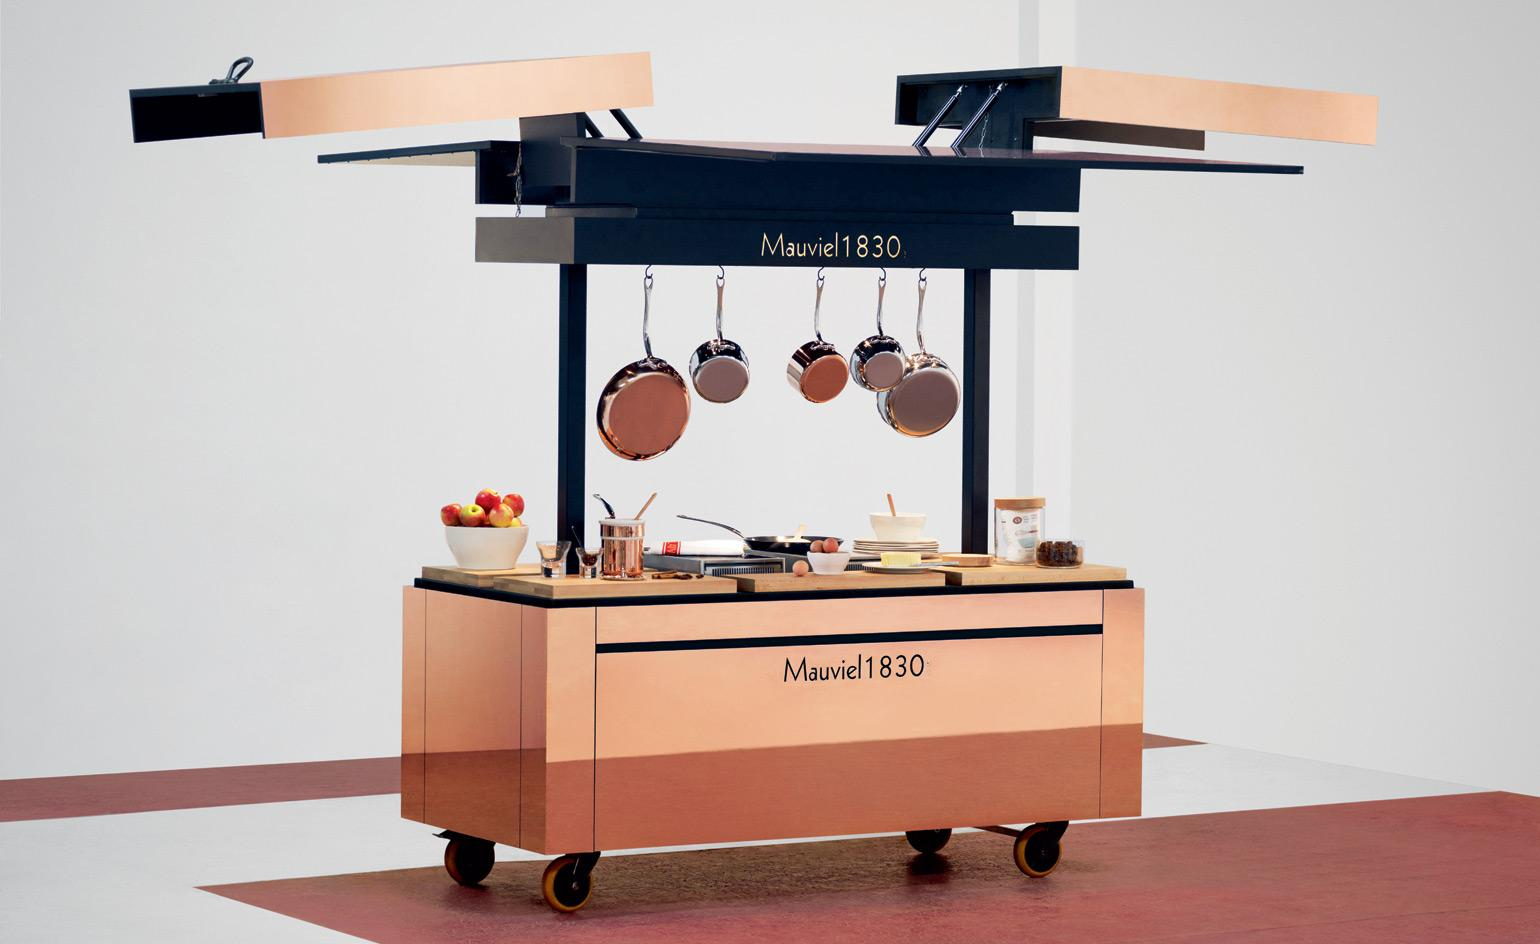 Box clever: a new mobile kitchen with hidden depths